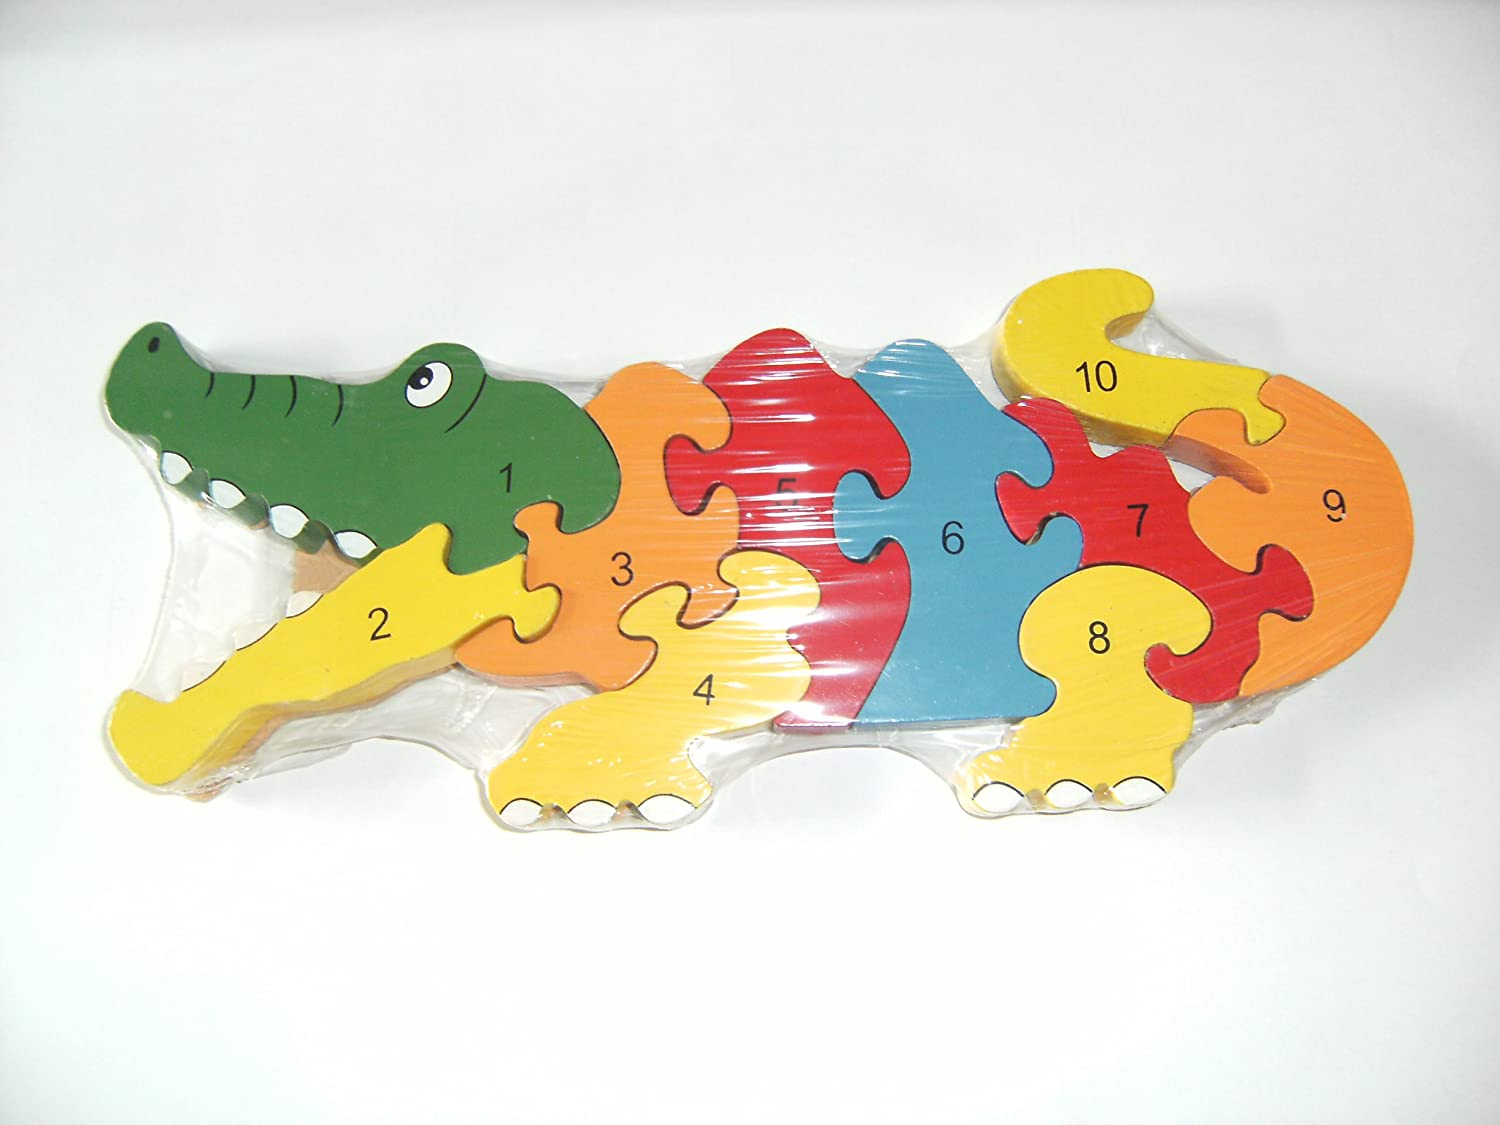 Ackerman Traditional Wood'n'Fun: Baby/Toodler Wooden Colourful Crocodile Jigsaw/Puzzle. D60700/G